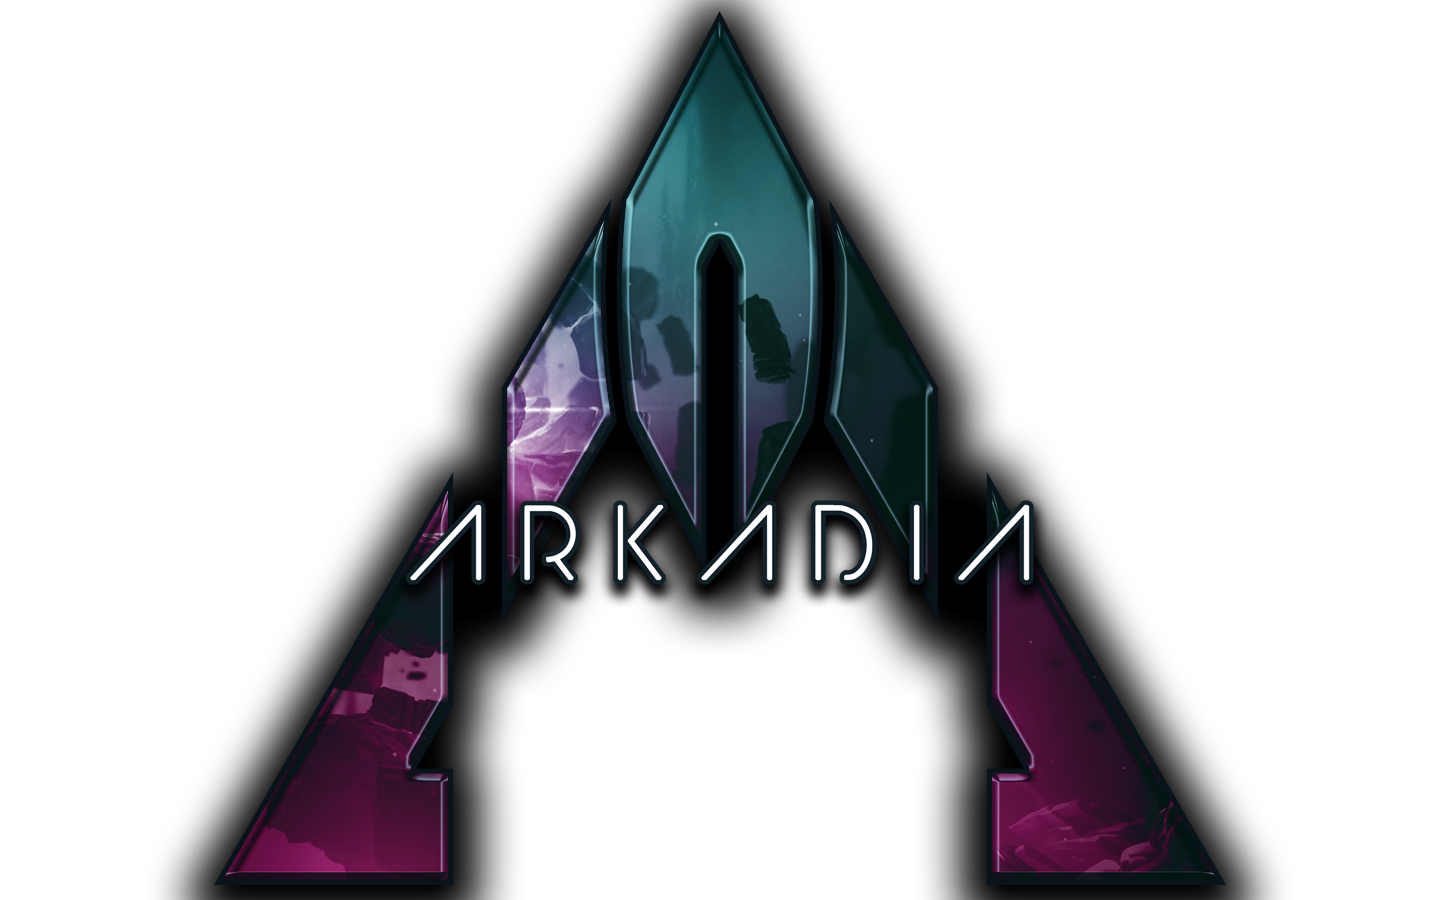 Enter Arkadia